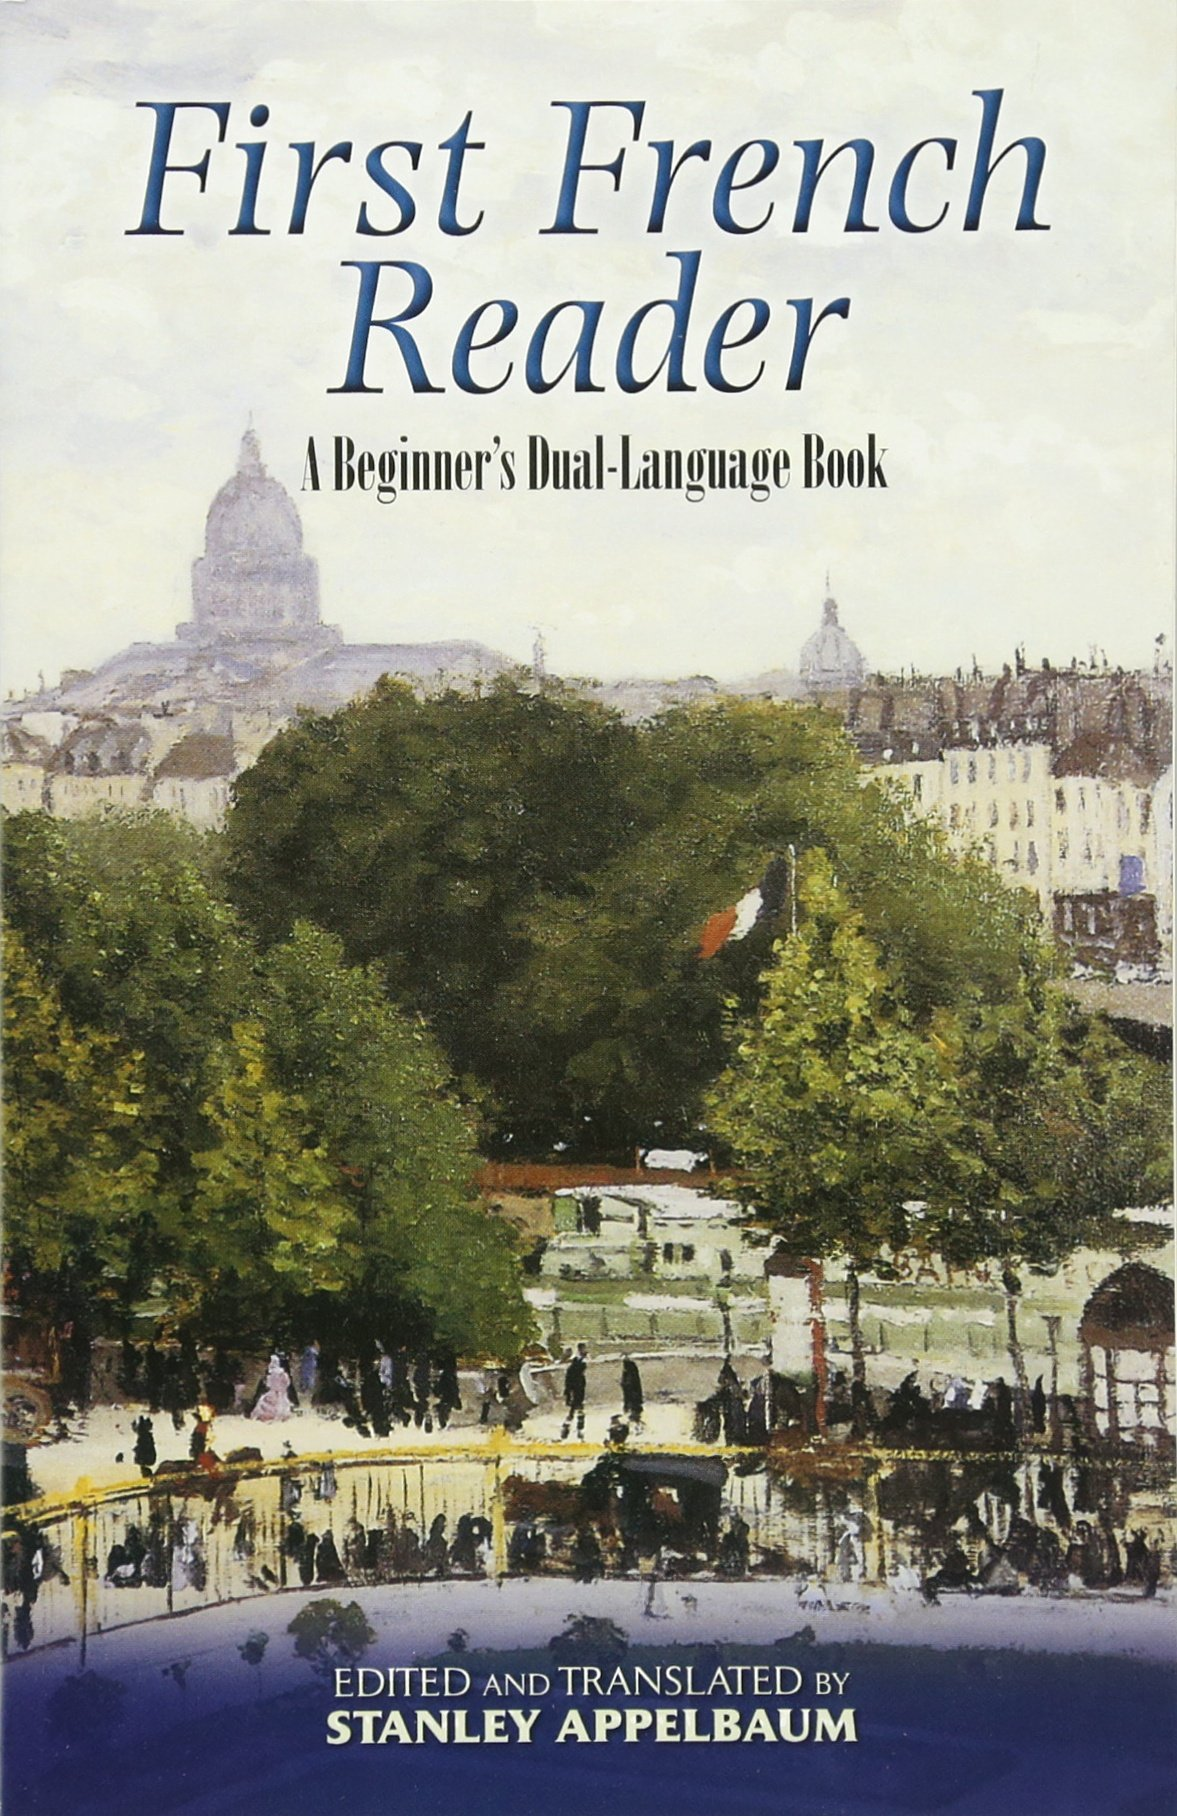 First French Reader: A Beginner's Dual-Language Book (Dover Books on Language)